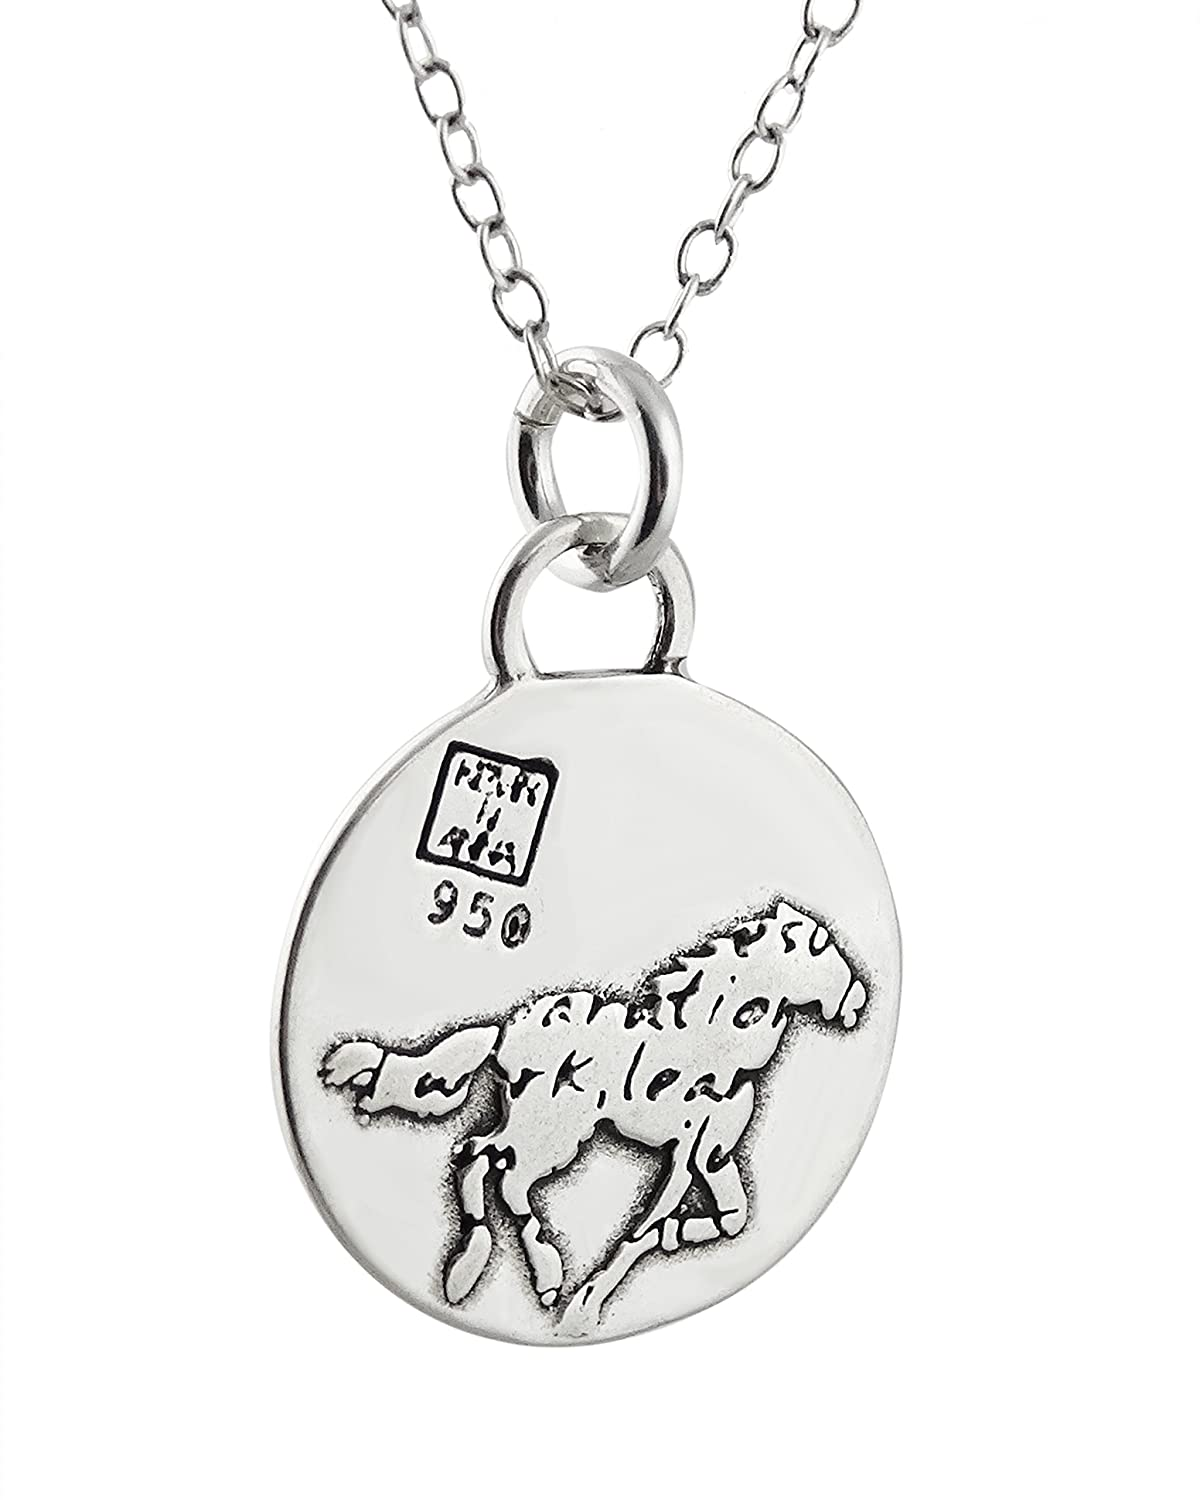 18 Chain FashionJunkie4Life Sterling Silver Horse Charm Necklace with Inspirational Success Quote